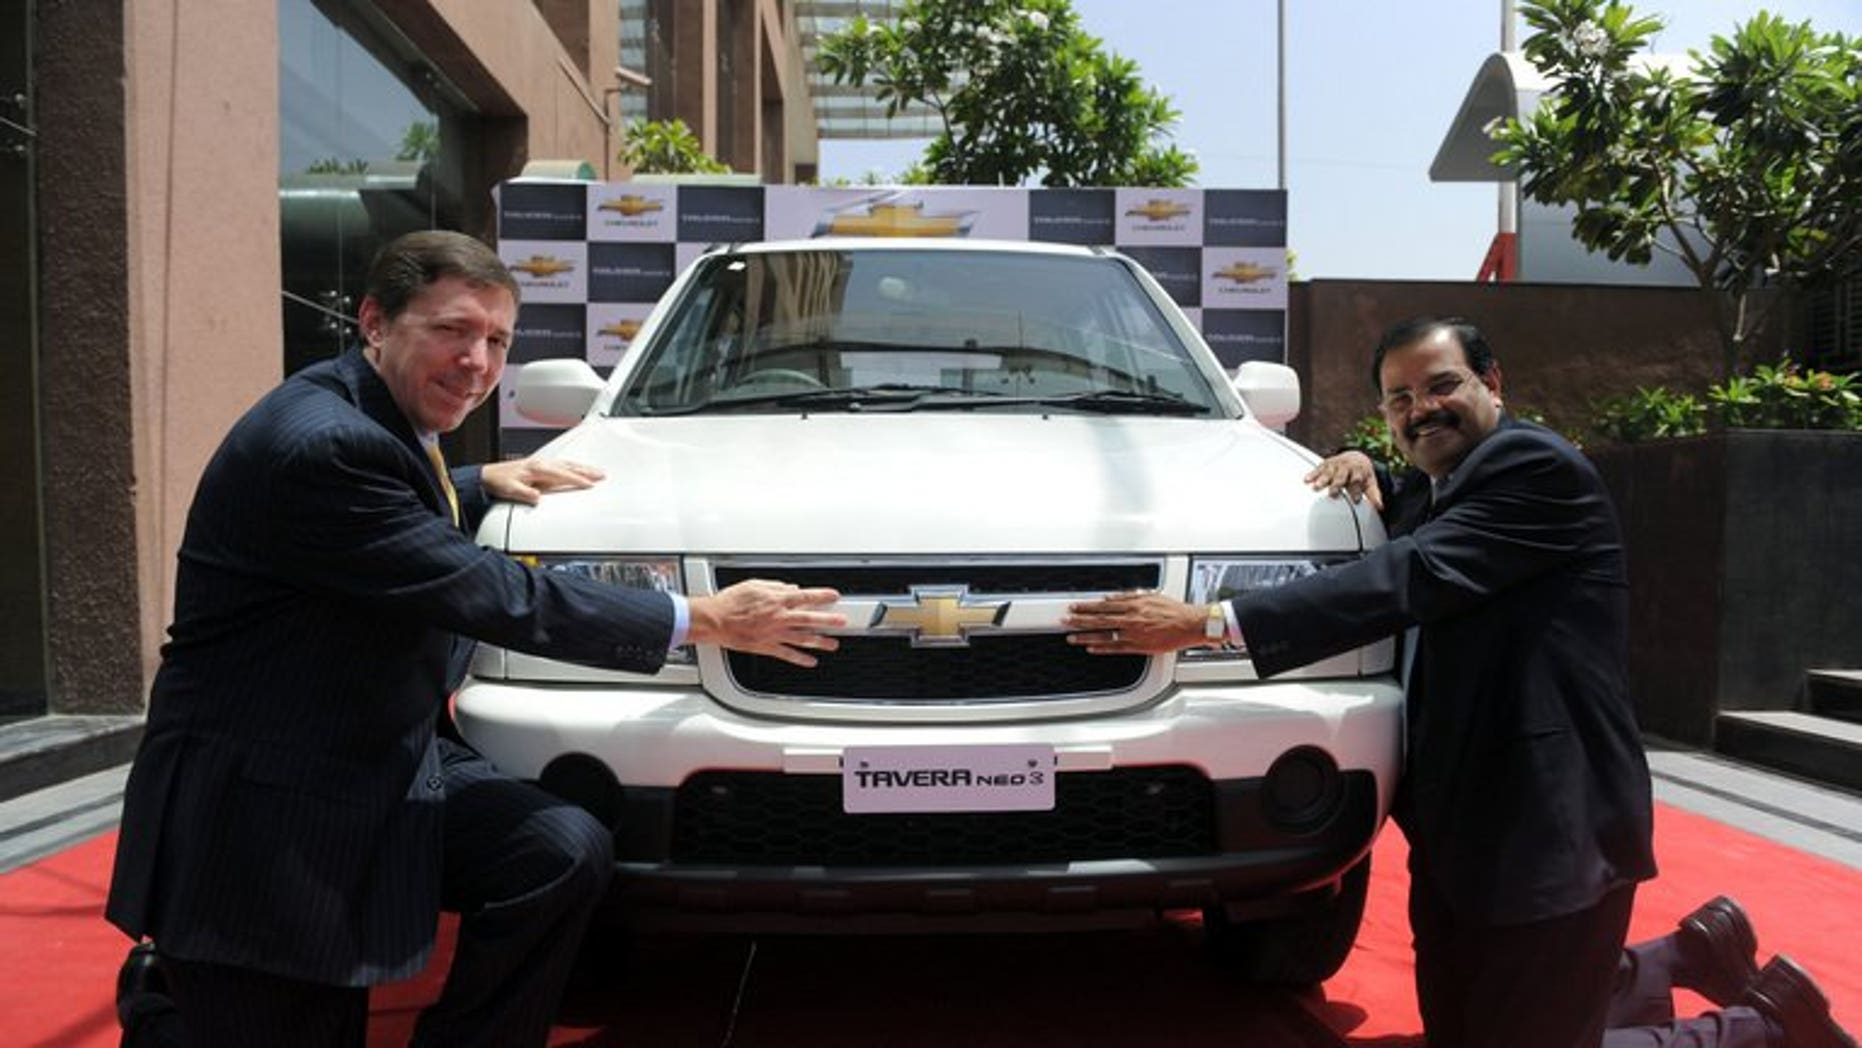 """General Motors India's president and managing director Lowell Paddock (left) and vice president of corporate affairs GM India P Balendran in Ahmedabad on March 23, 2012. GM said Saturday it has fired """"several employees"""" after violations of company policy led to the recall of 114,000 of its Chevrolet Tavera sport-utility vehicles in India."""